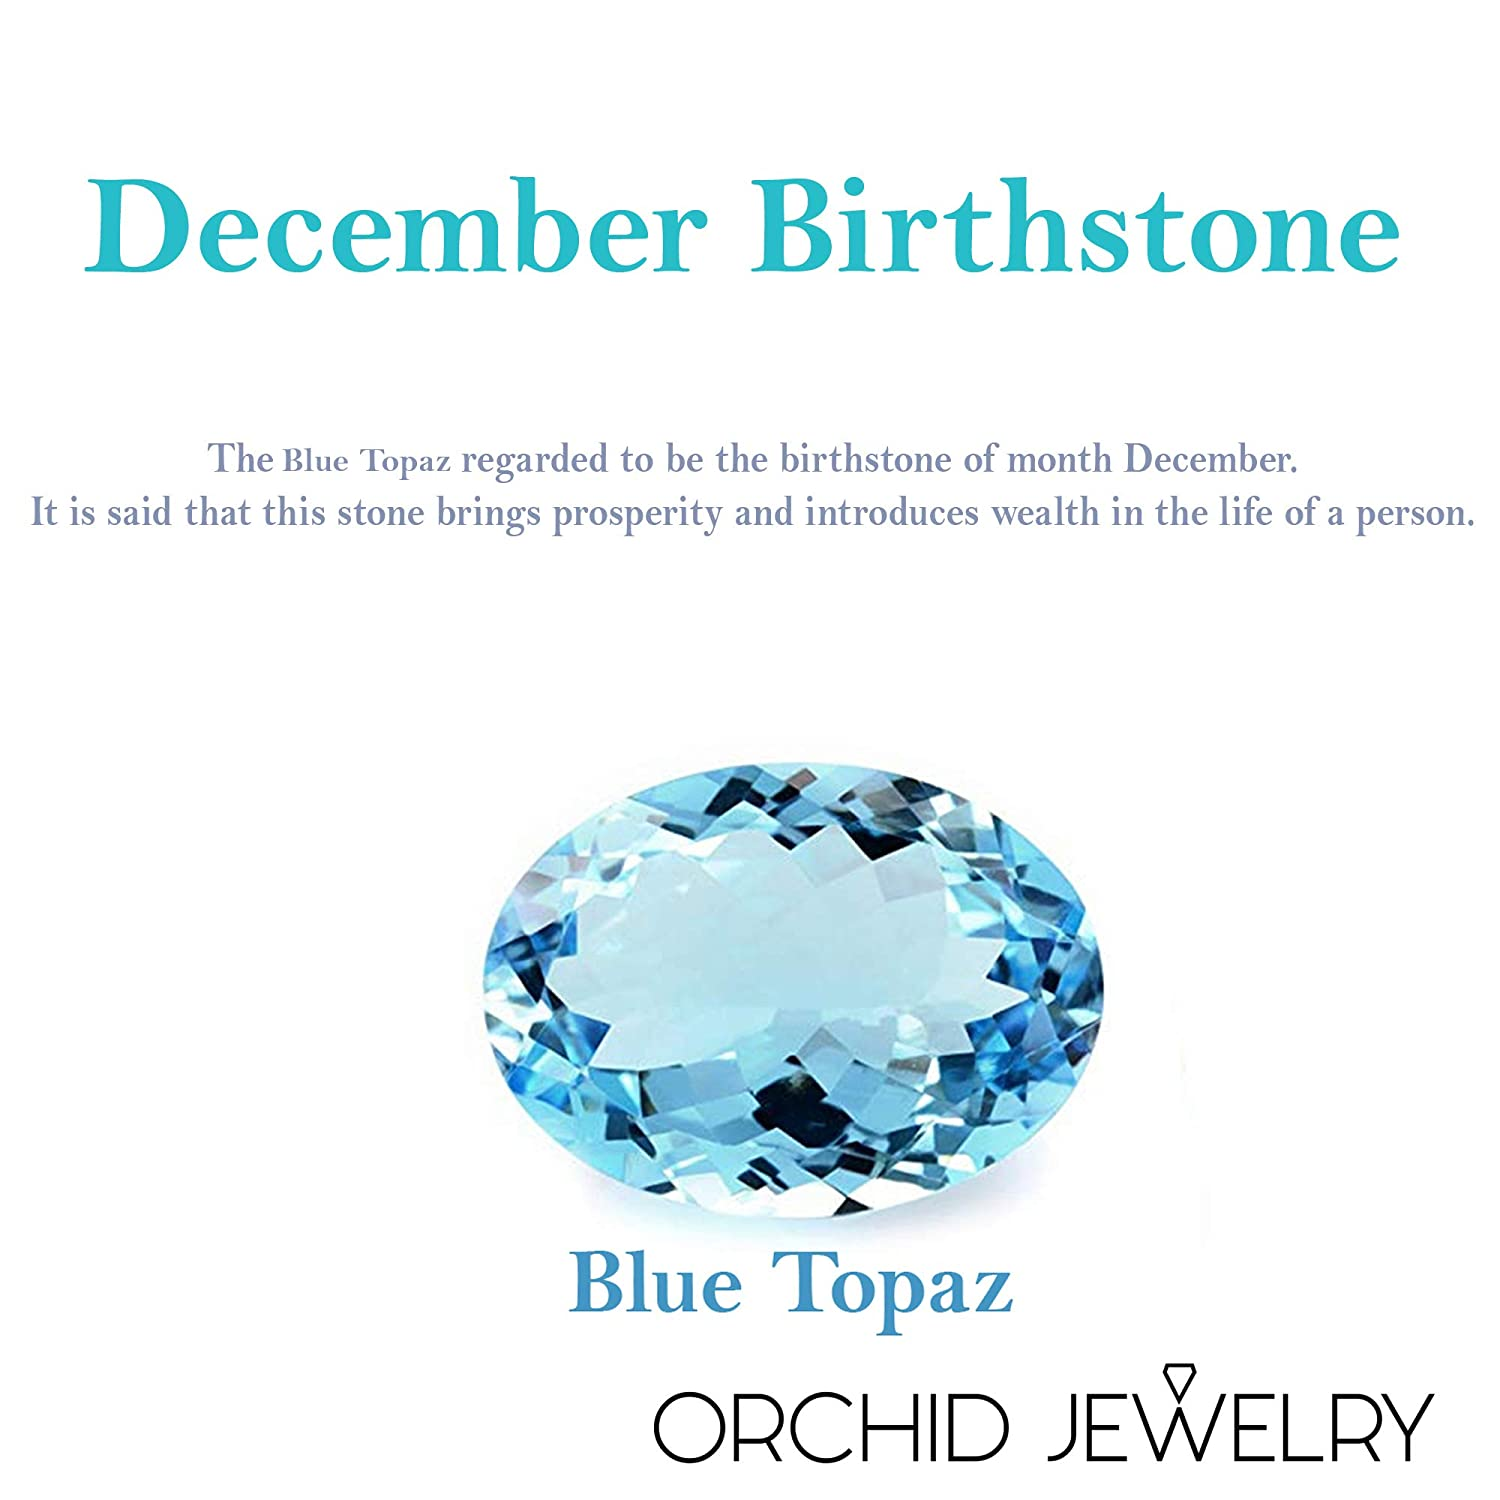 Genuine Blue Topaz Gemstone Charm Pendant Necklace By Orchid Jewelry December Birthstone Simple Gold Plated OverLay 925 Sterling Silver Jewelry Gifts for women 21.45 Ctw